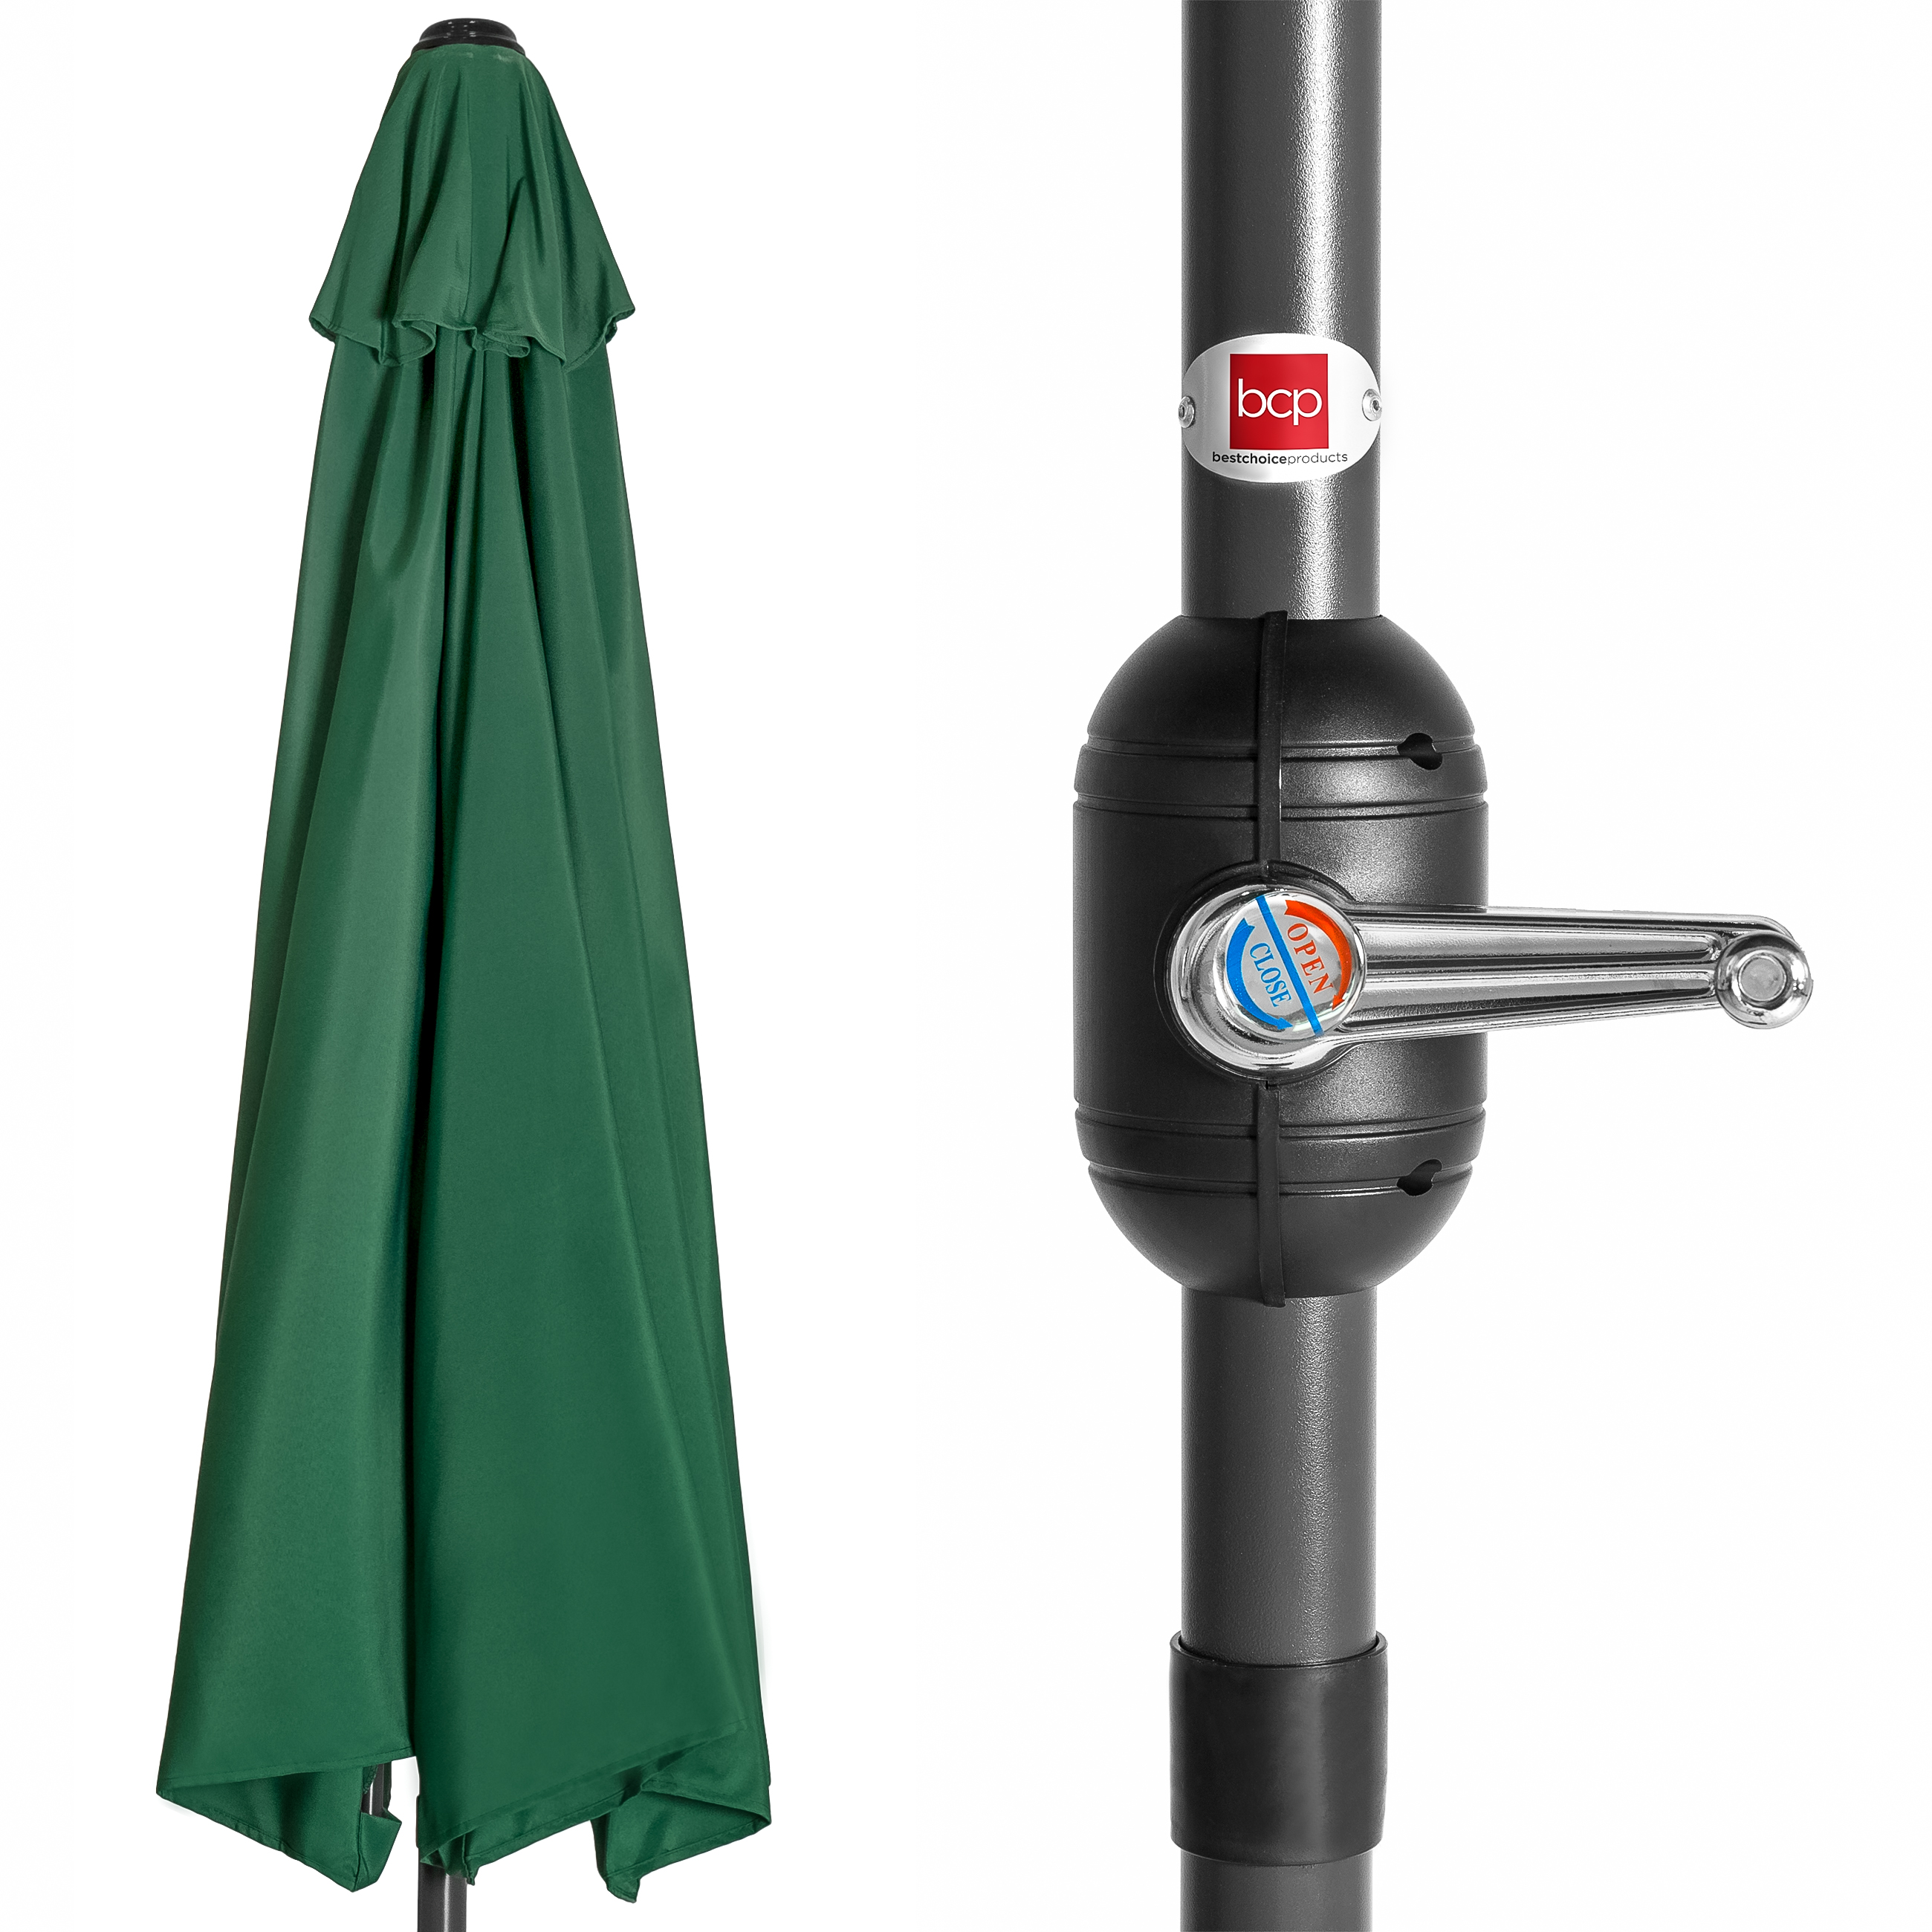 BCP-9ft-Half-Patio-Umbrella-w-Crank-Steel-Frame-UV-amp-Water-Resistant-Fabric thumbnail 23